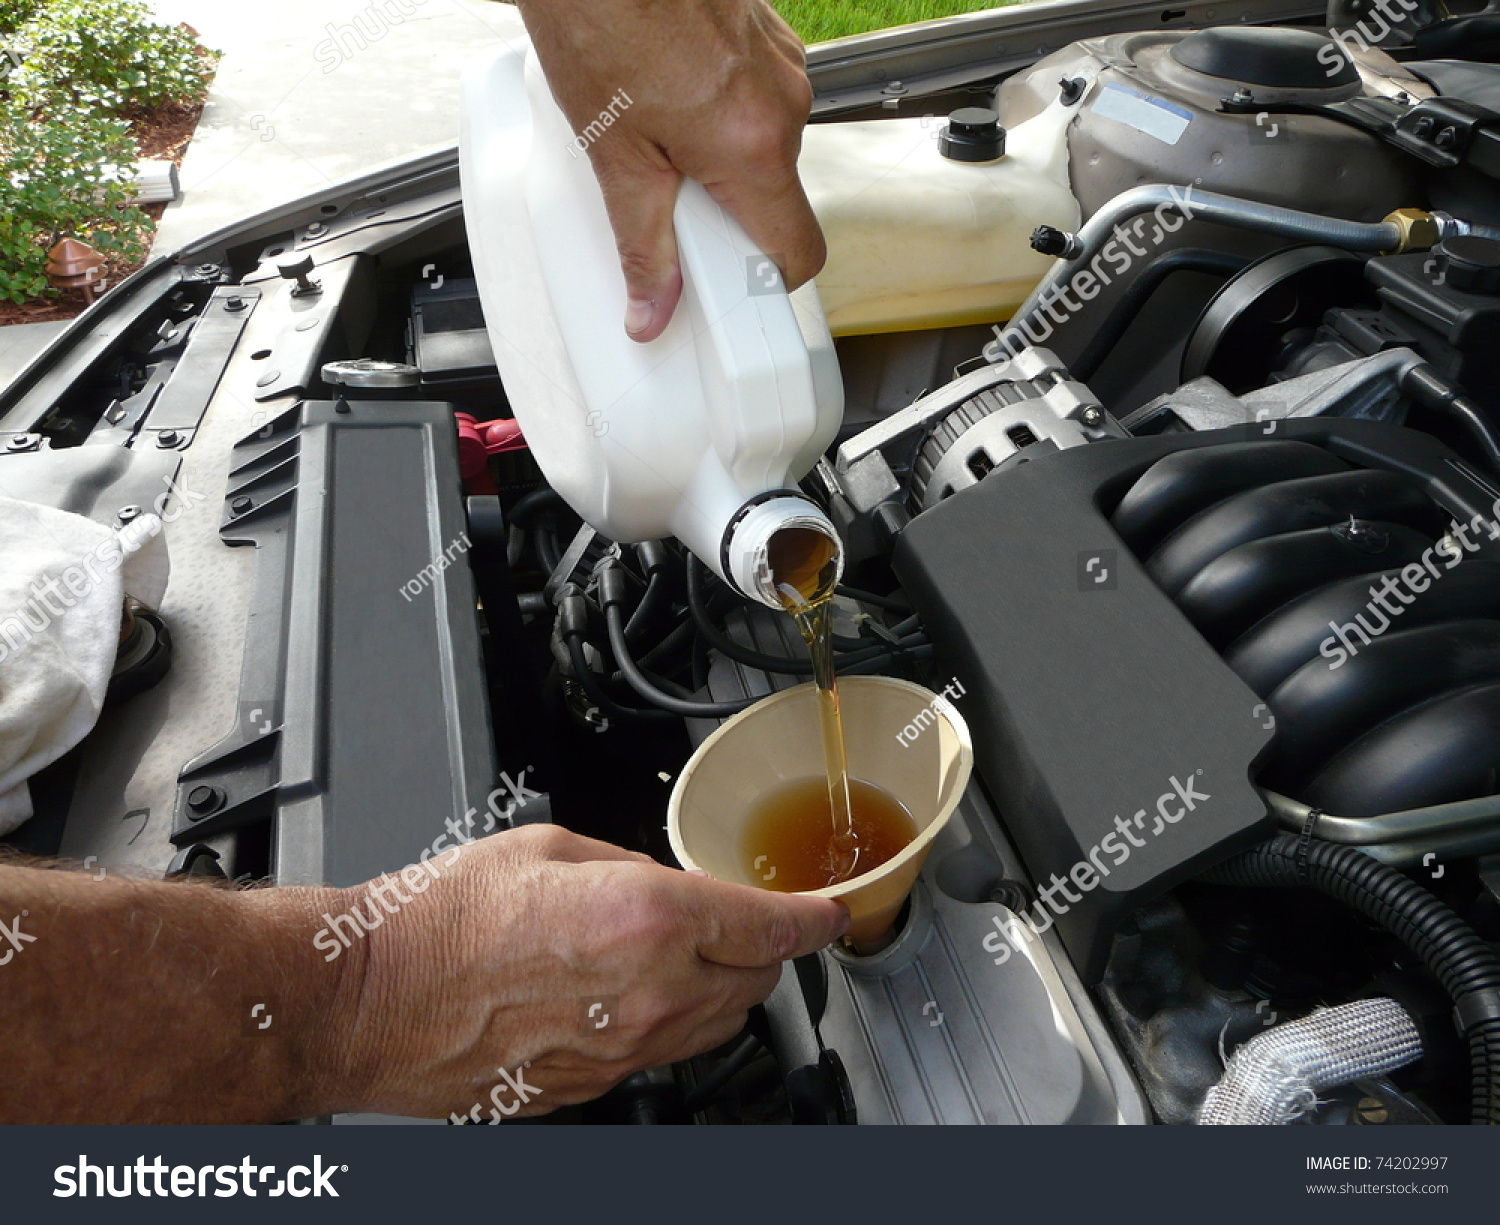 Male adding oil funnel after doityourself stock photo image male adding oil with a funnel after a do it yourself oil change solutioingenieria Gallery